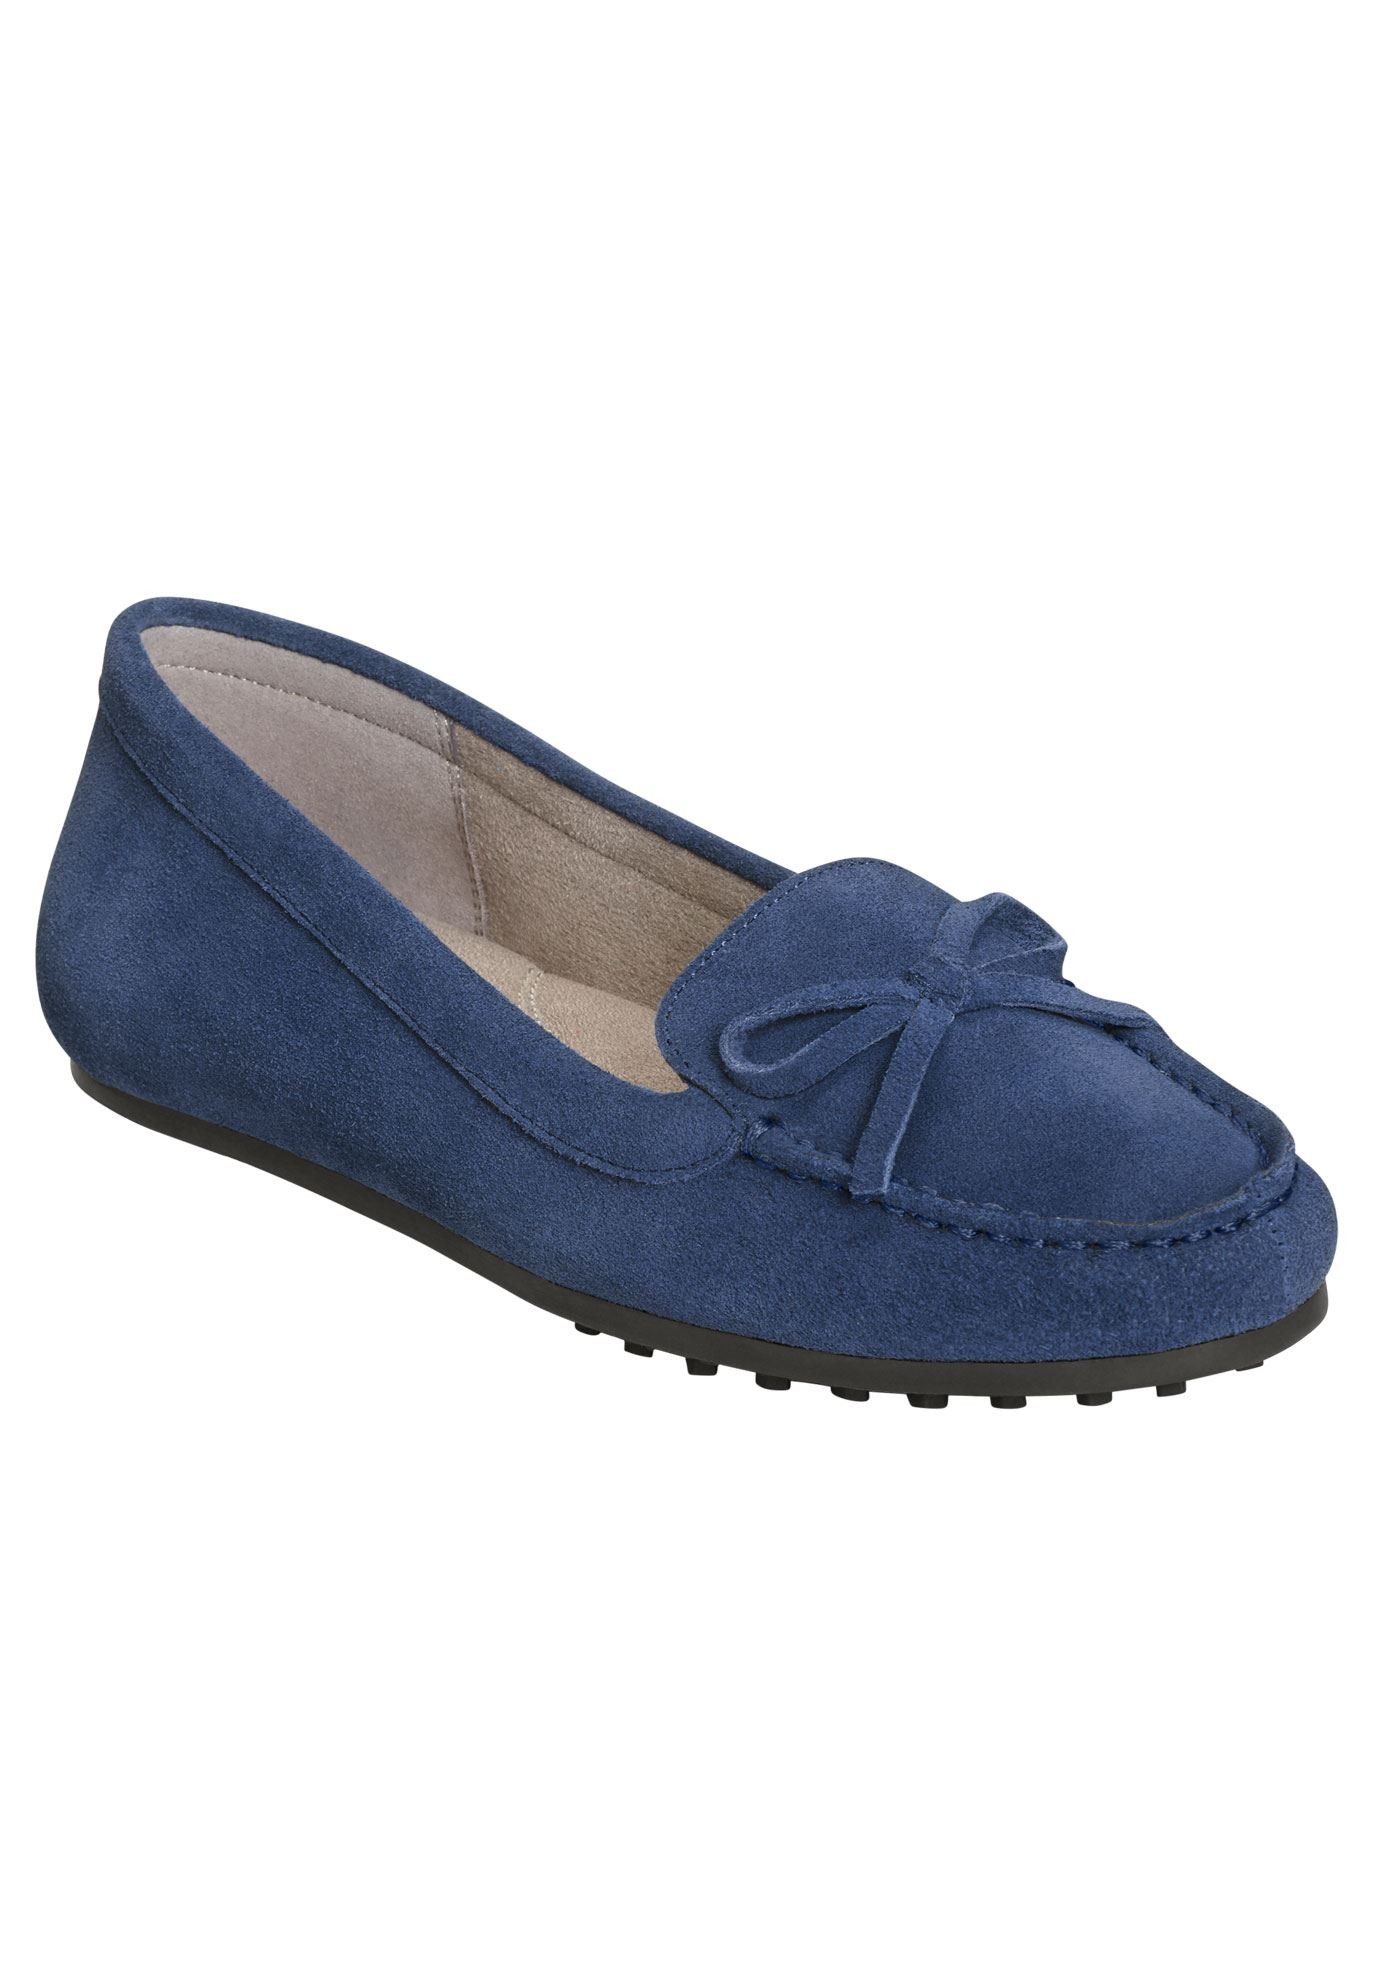 Long Drive Moccasins by Aerosoles®,